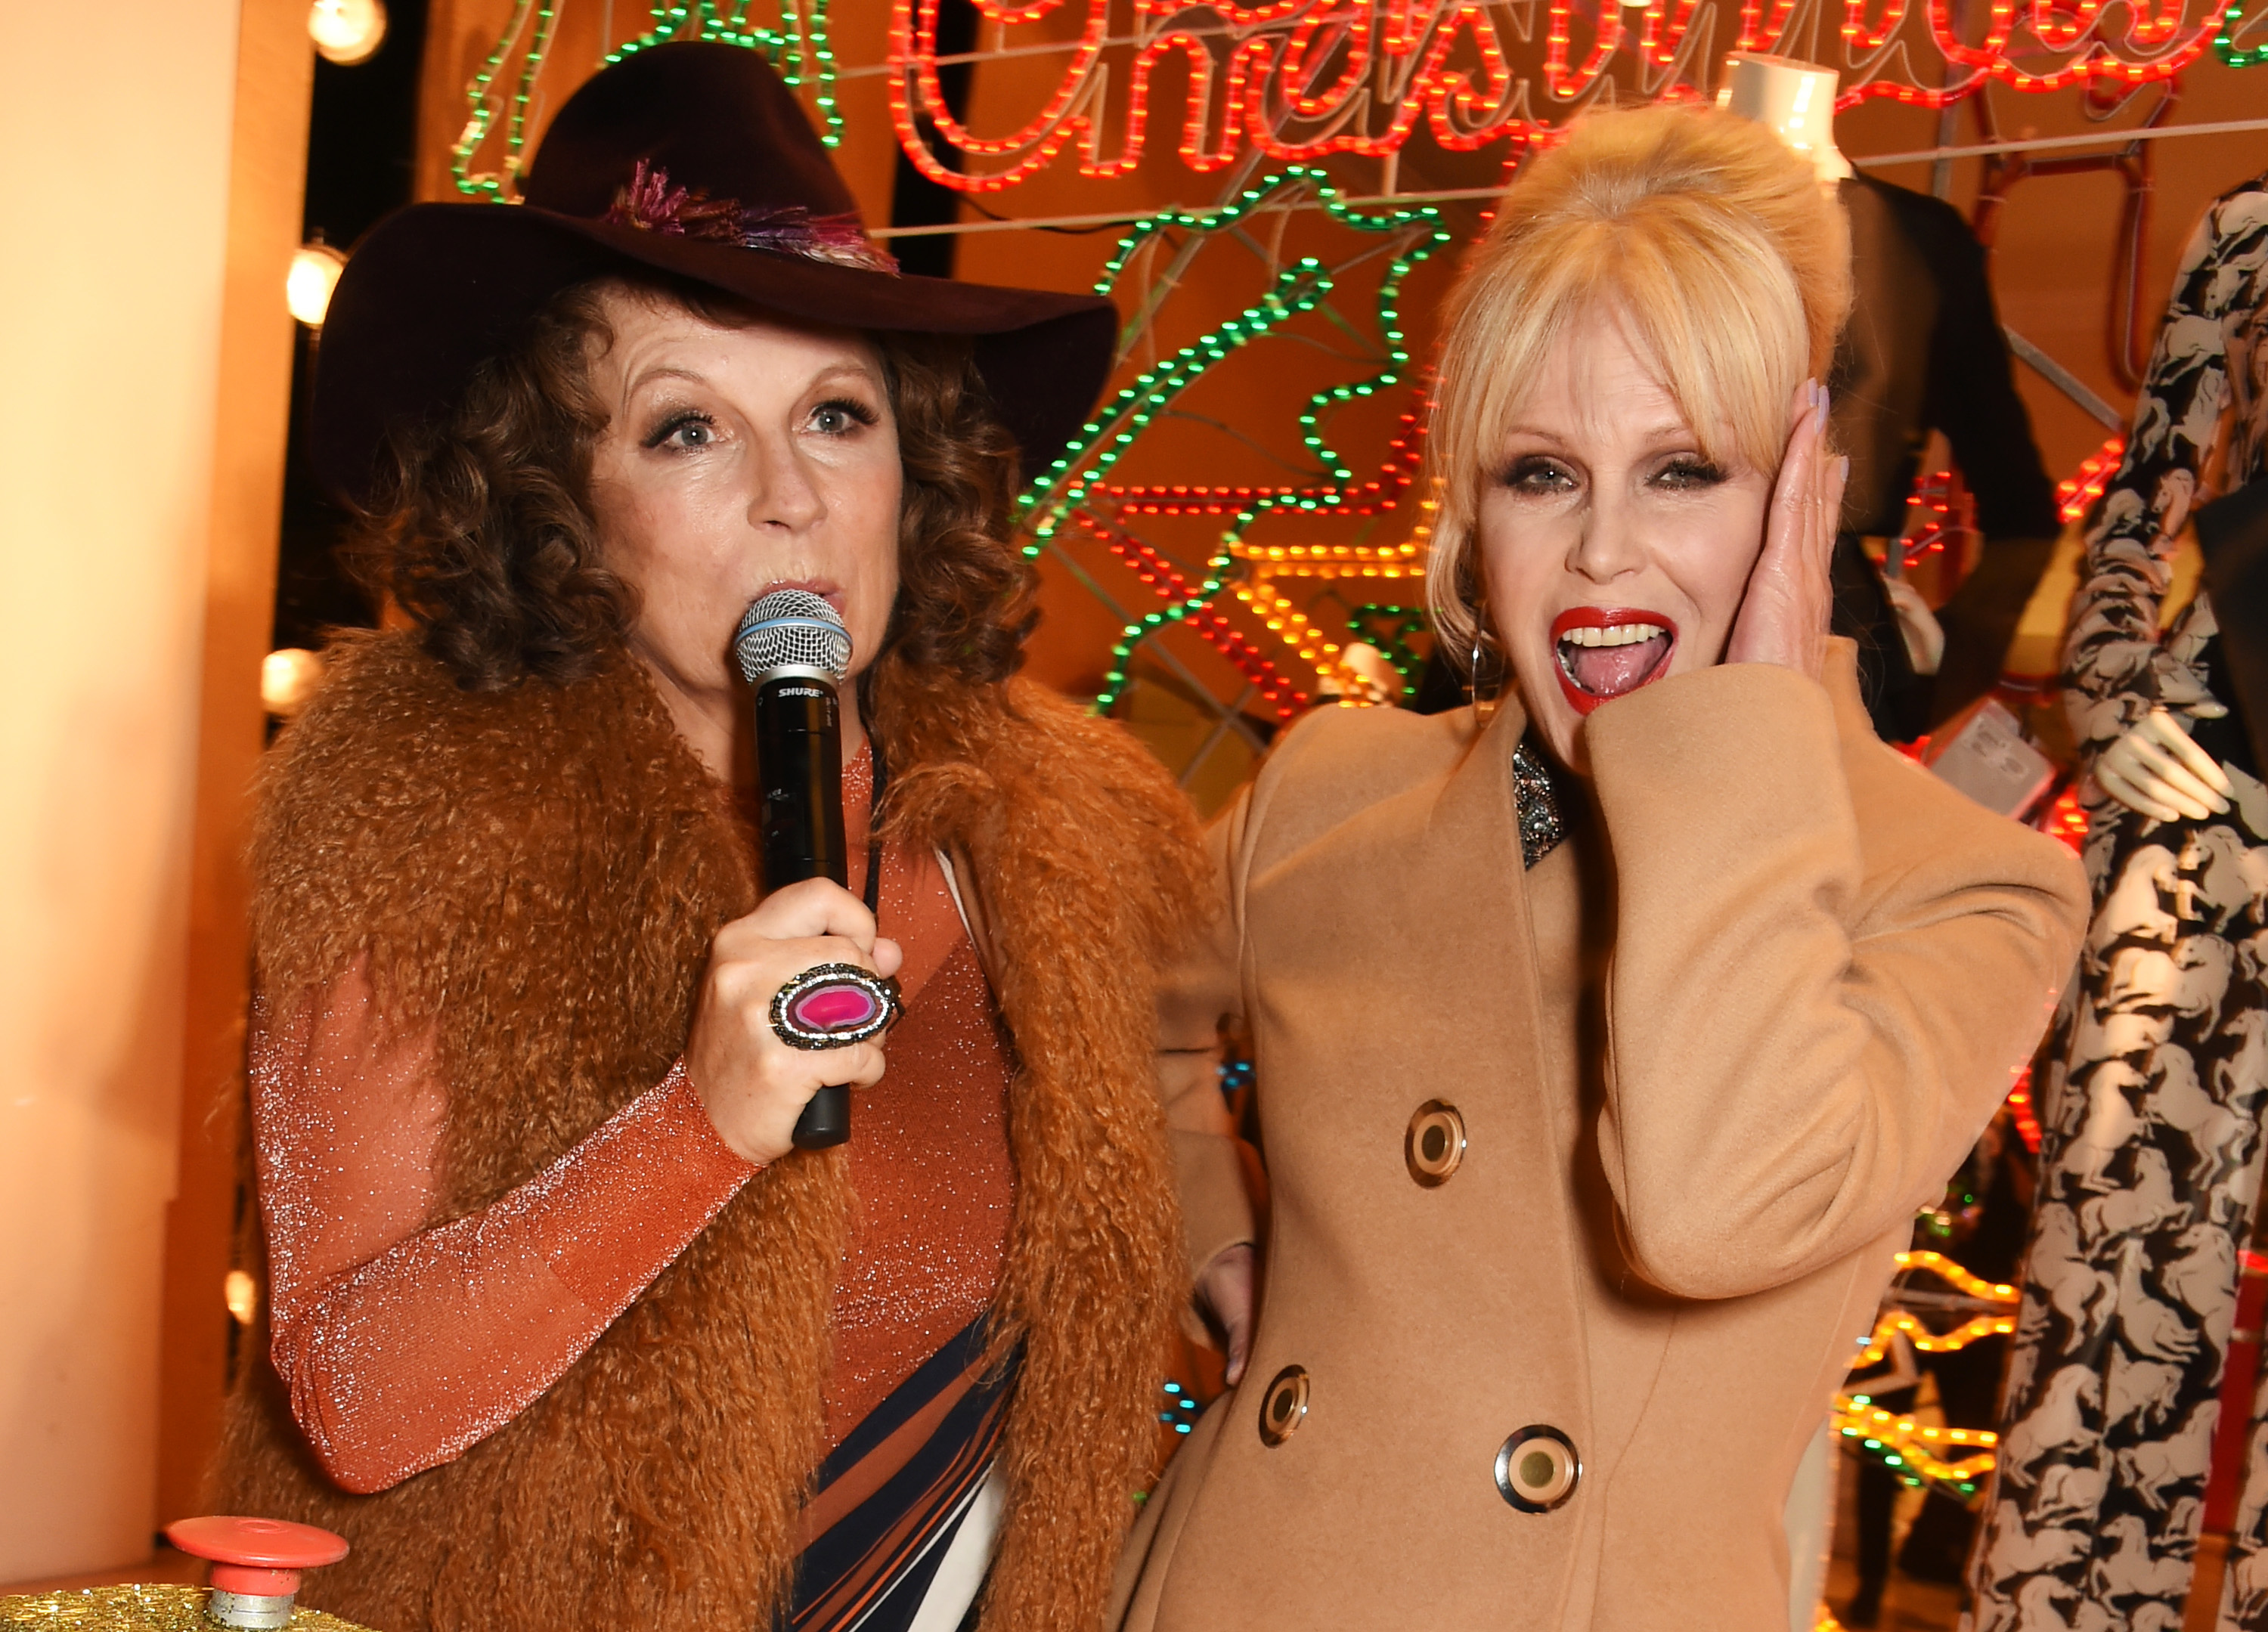 Jennifer Saunders (L) and Joanna Lumley as Edina Monsoon and Patsy Stone from 'Absolutely Fabulous' attend the Stella McCartney Christmas Lights switch on, Nov. 25, 2015 in London, England